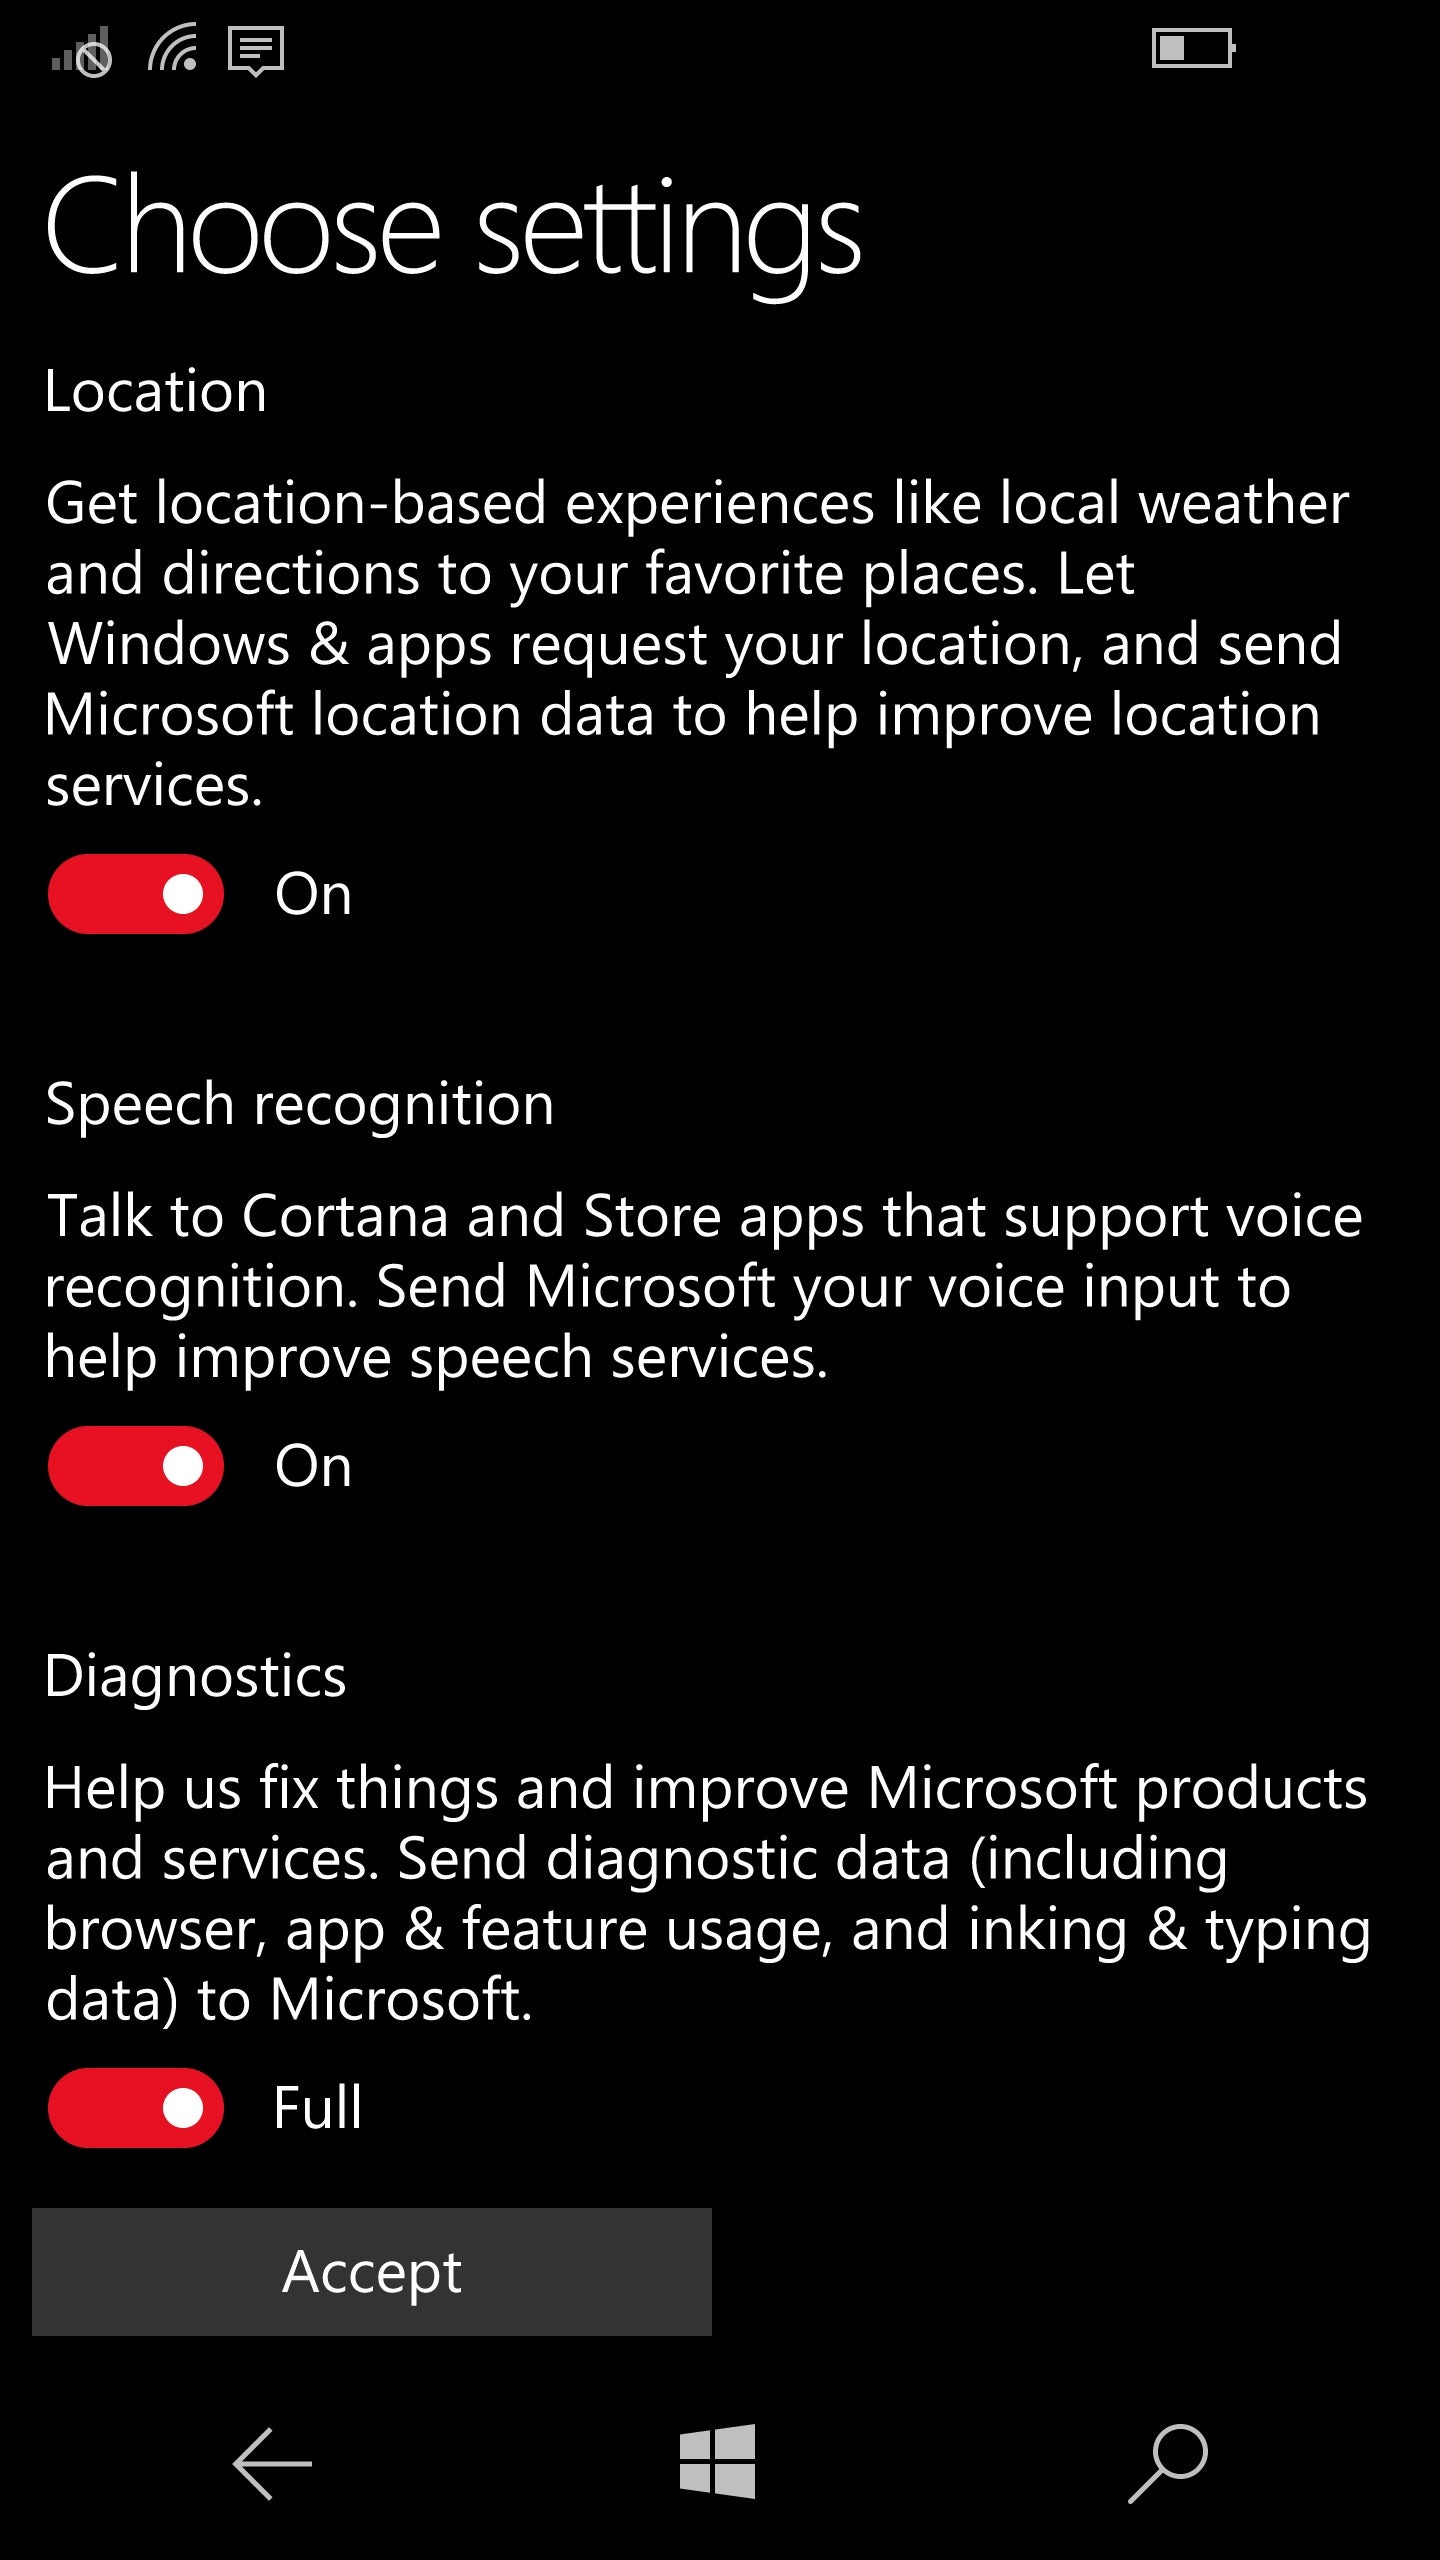 Windows 10 Mobile Now you can update your phone from your PC